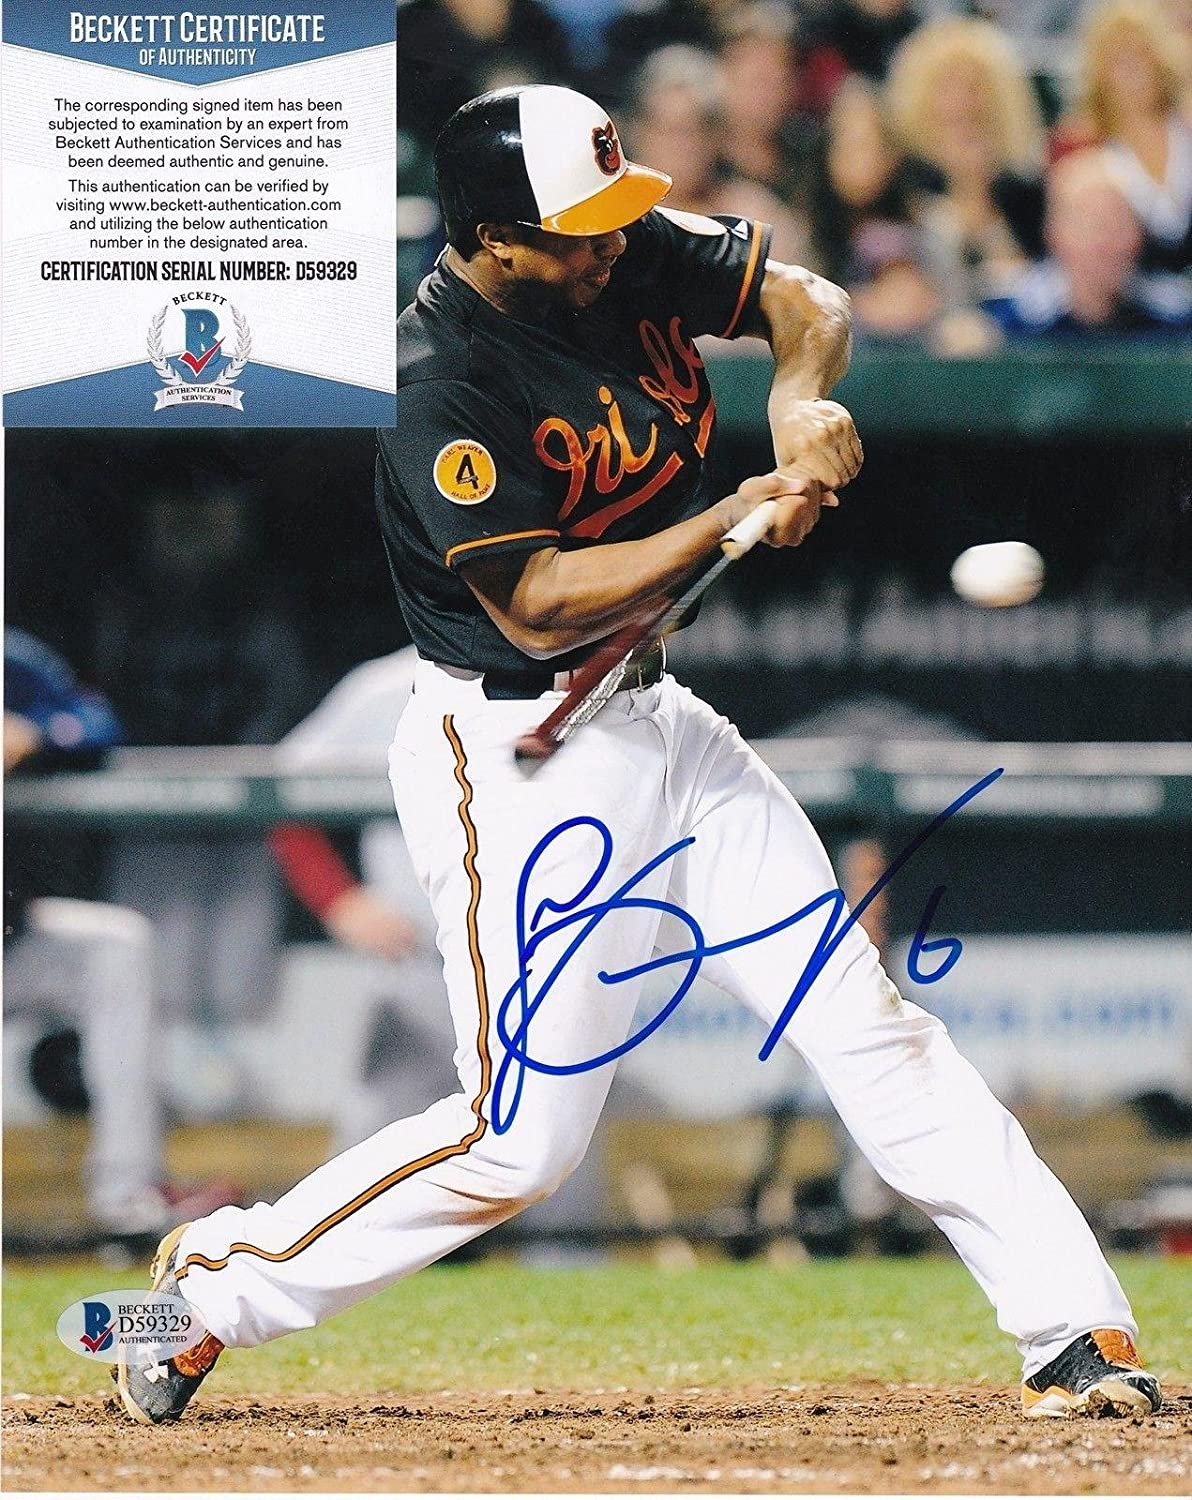 7b48d262c Jonathan Schoop Autographed Photograph - BECKETT 8x10 - Beckett  Authentication - Autographed MLB Photos at Amazon s Sports Collectibles  Store